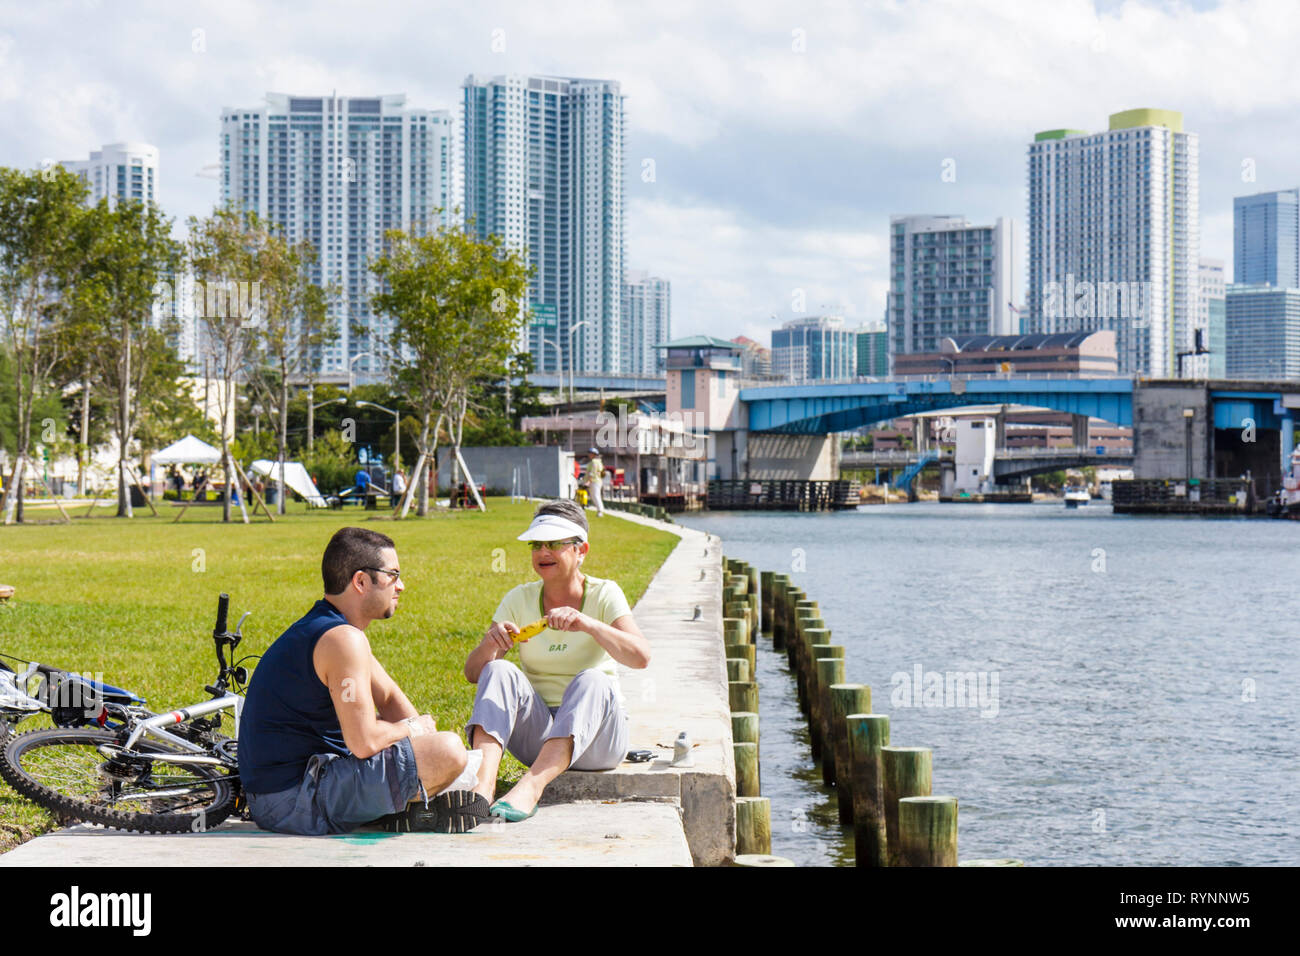 Miami Florida River Bike Miami Days community event Hispanic man woman cyclist bicycle picnic eating leisure older younger - Stock Image